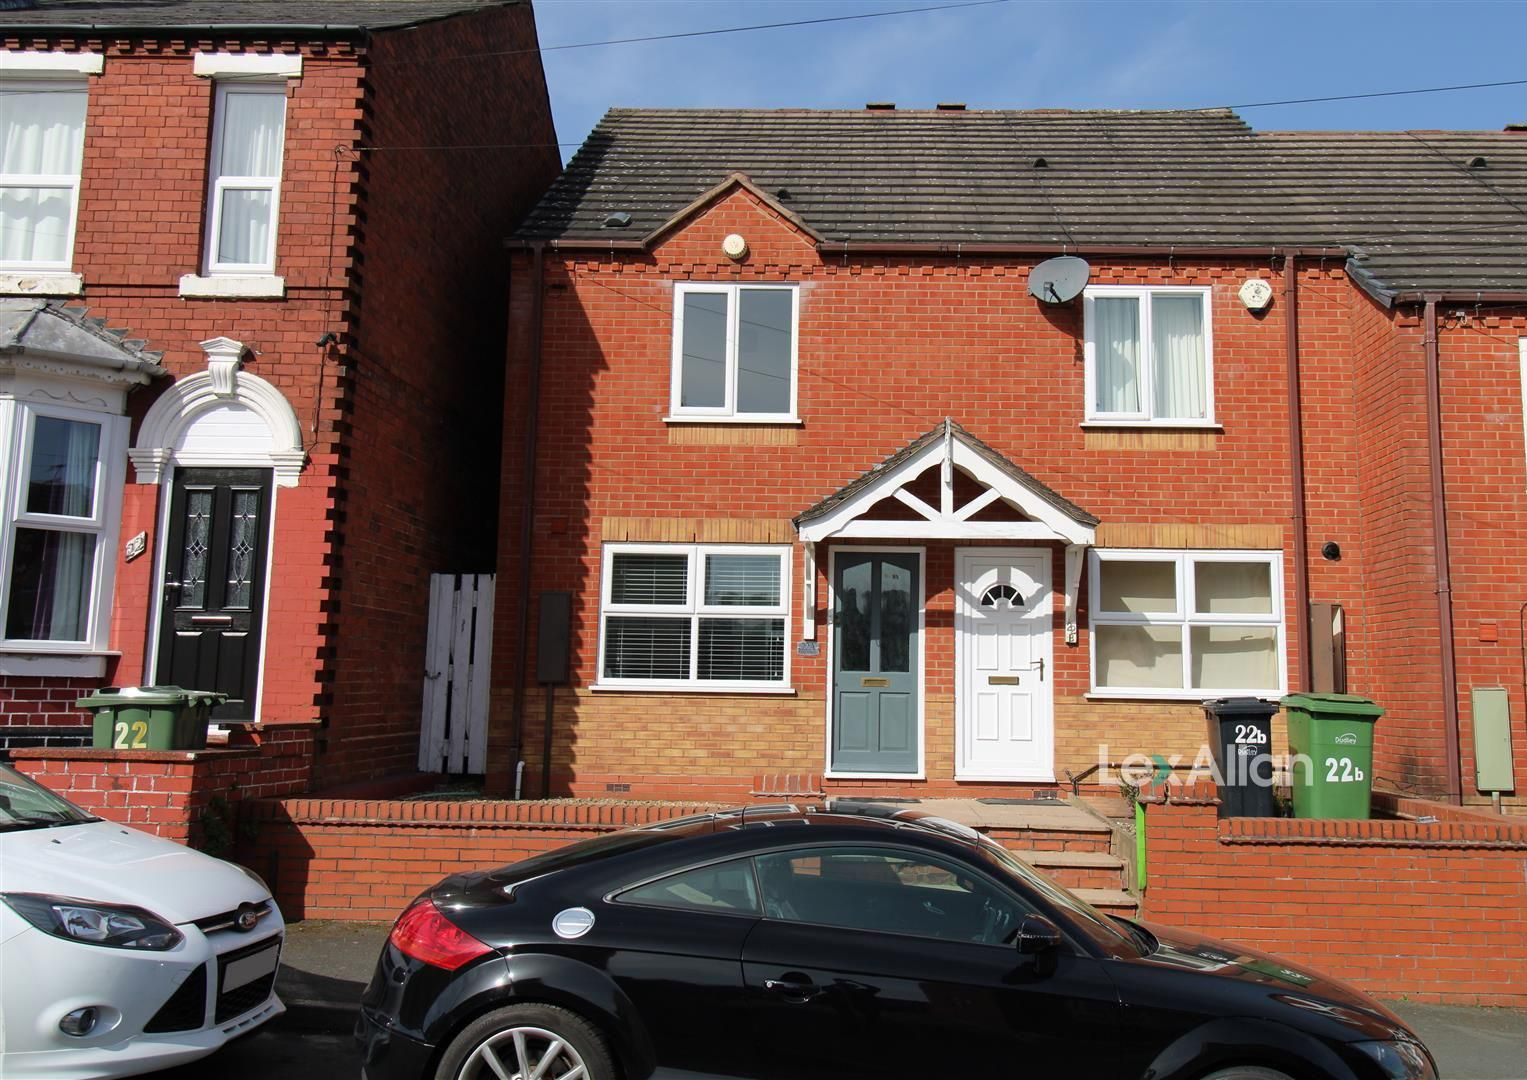 2 bed end-of-terrace for sale in Lye, DY9